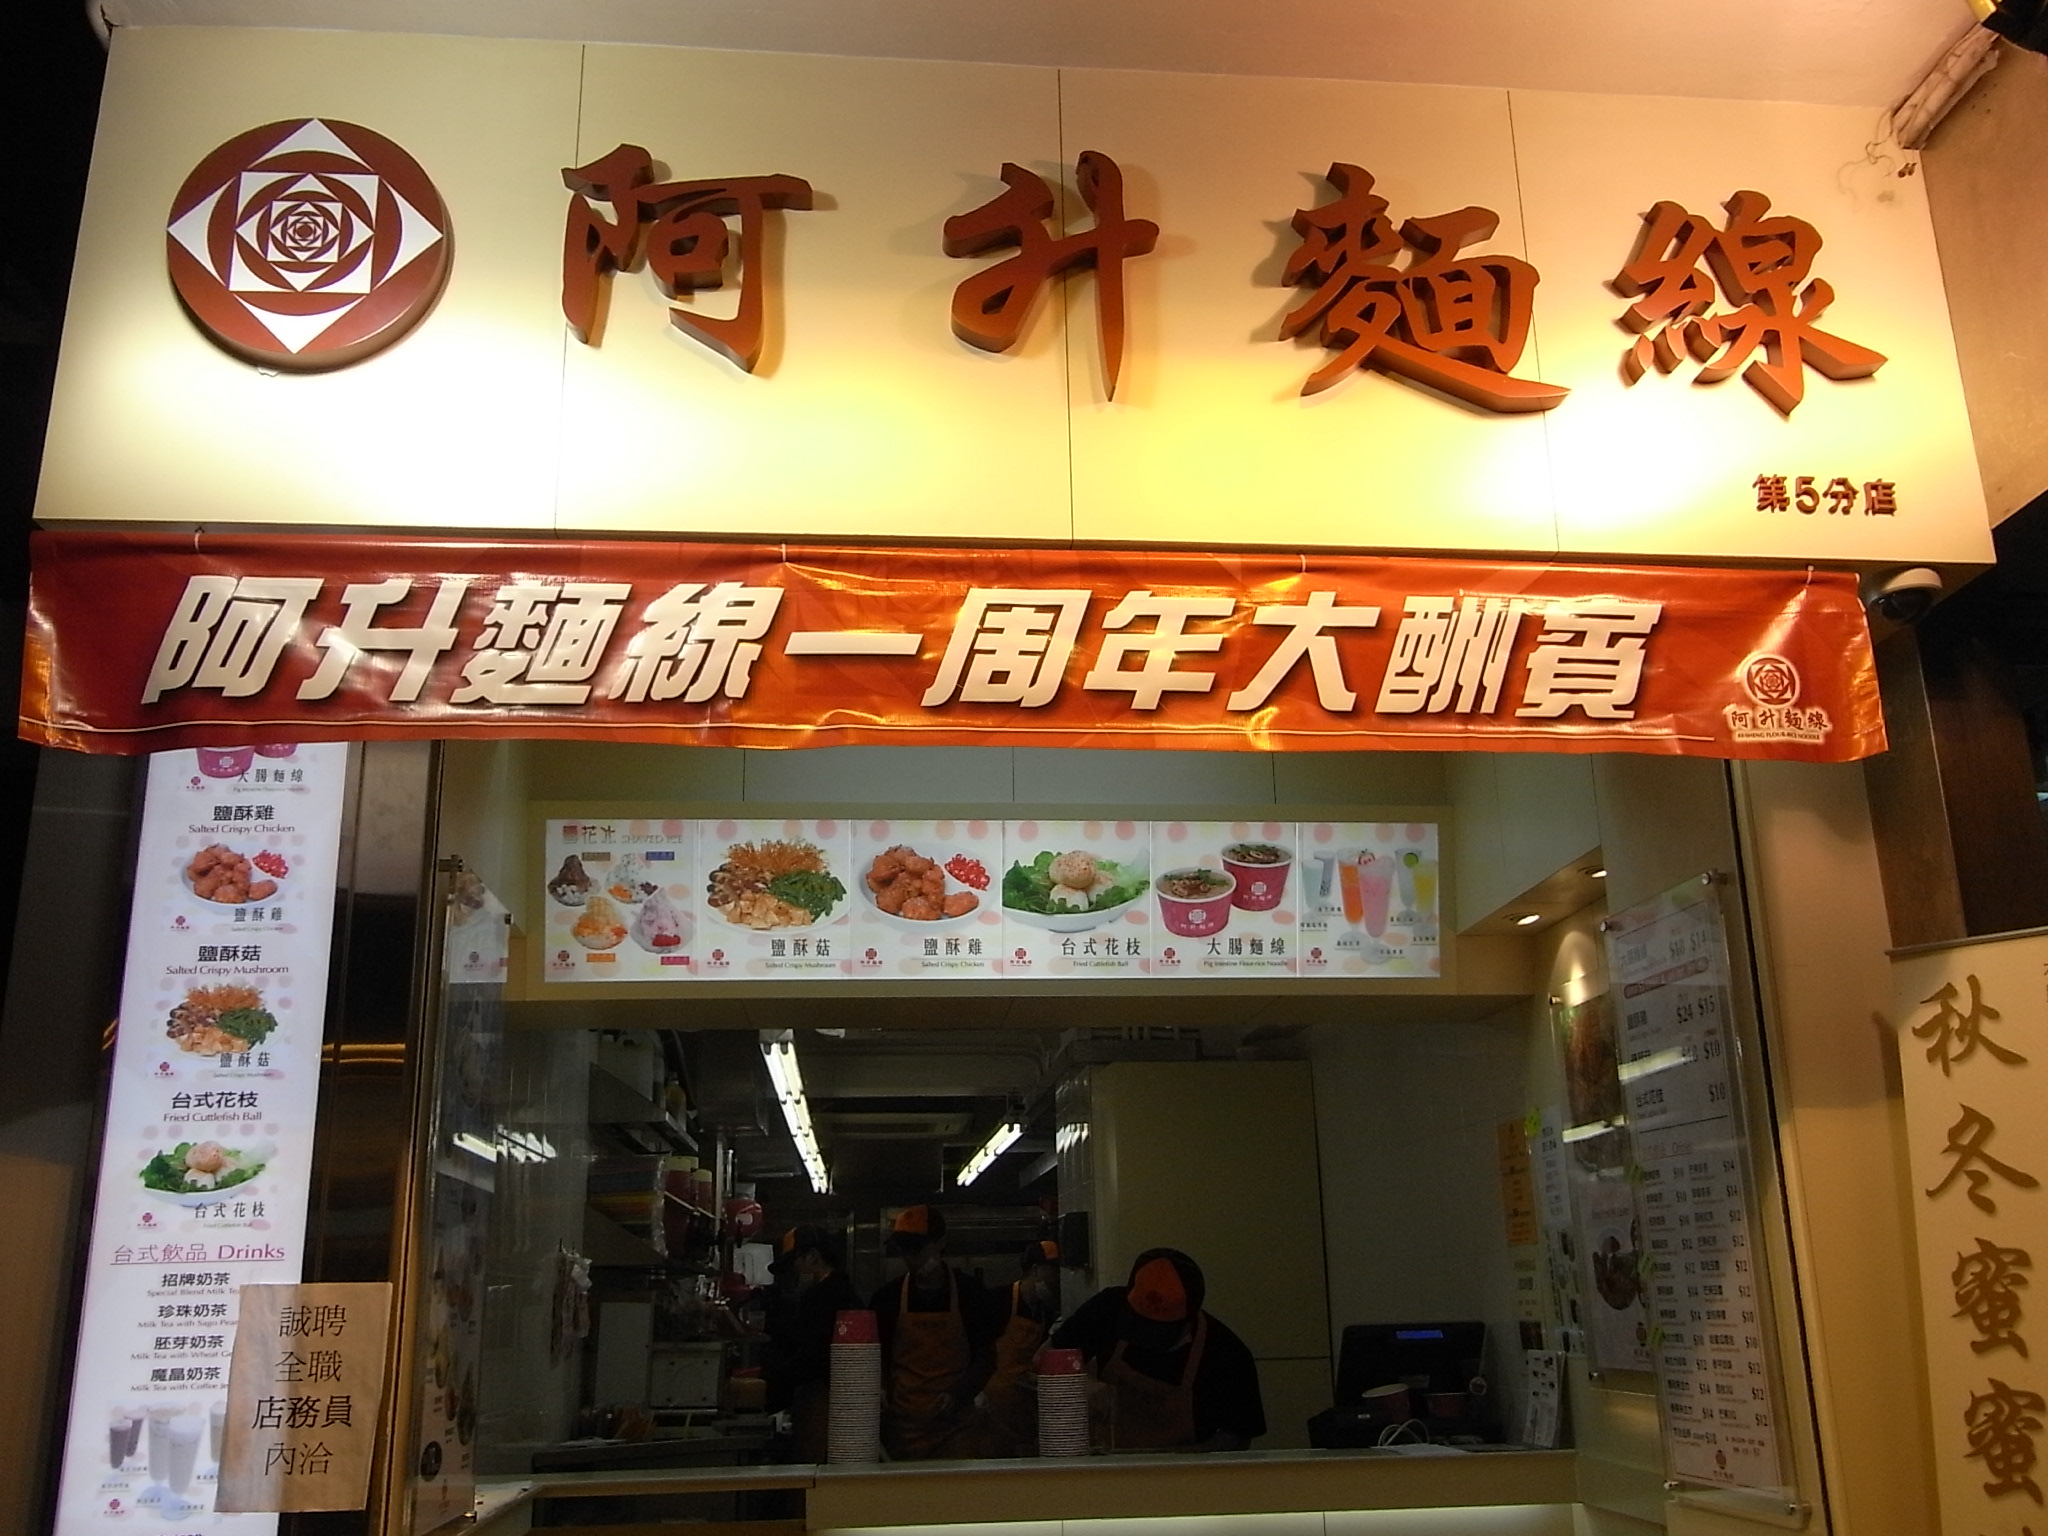 Chinese Noodle Shop Road Chinese Noodle Shop